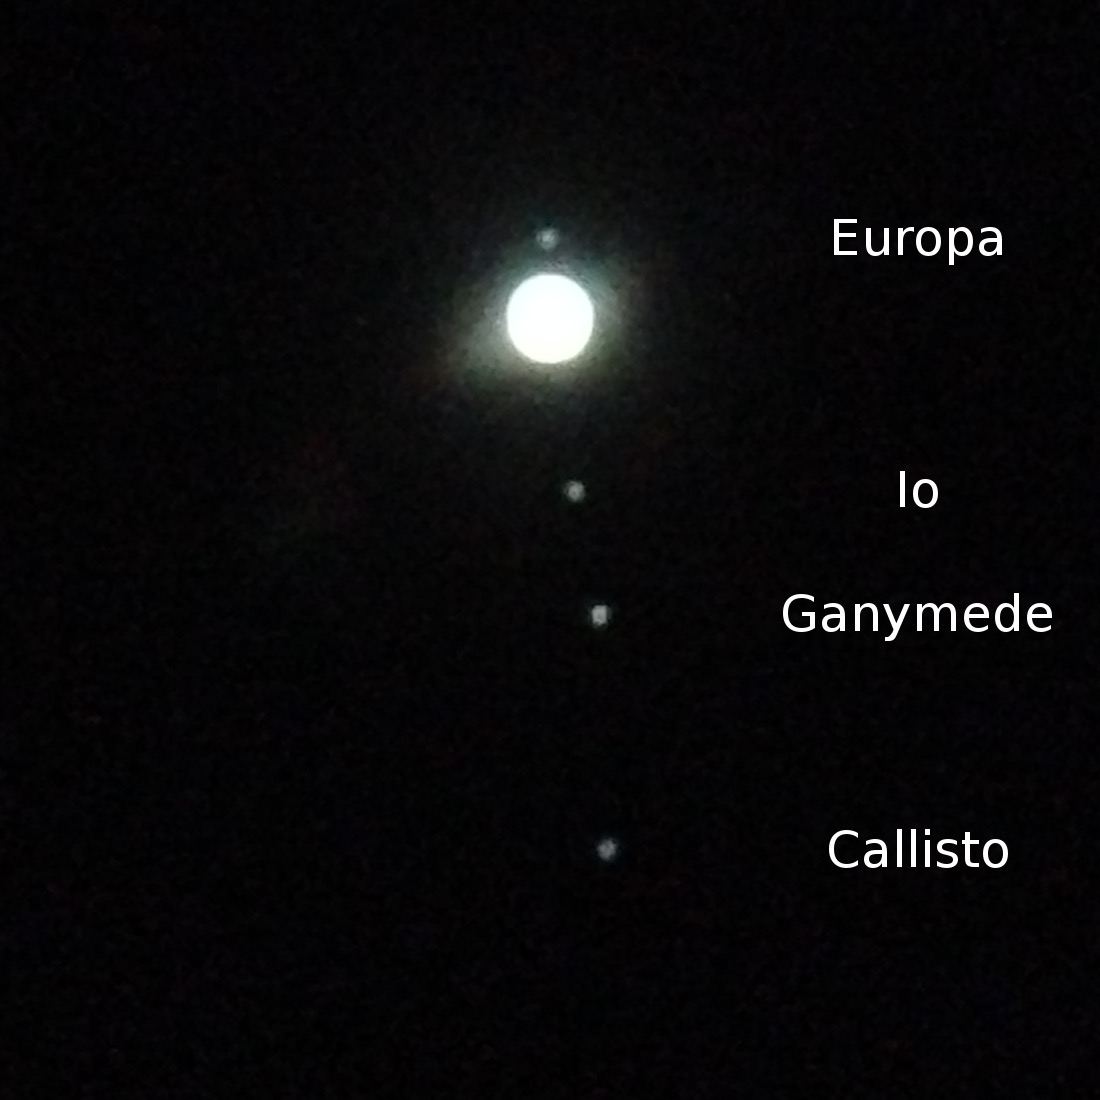 Jupiter and moons 0530 PST 2015-11-15